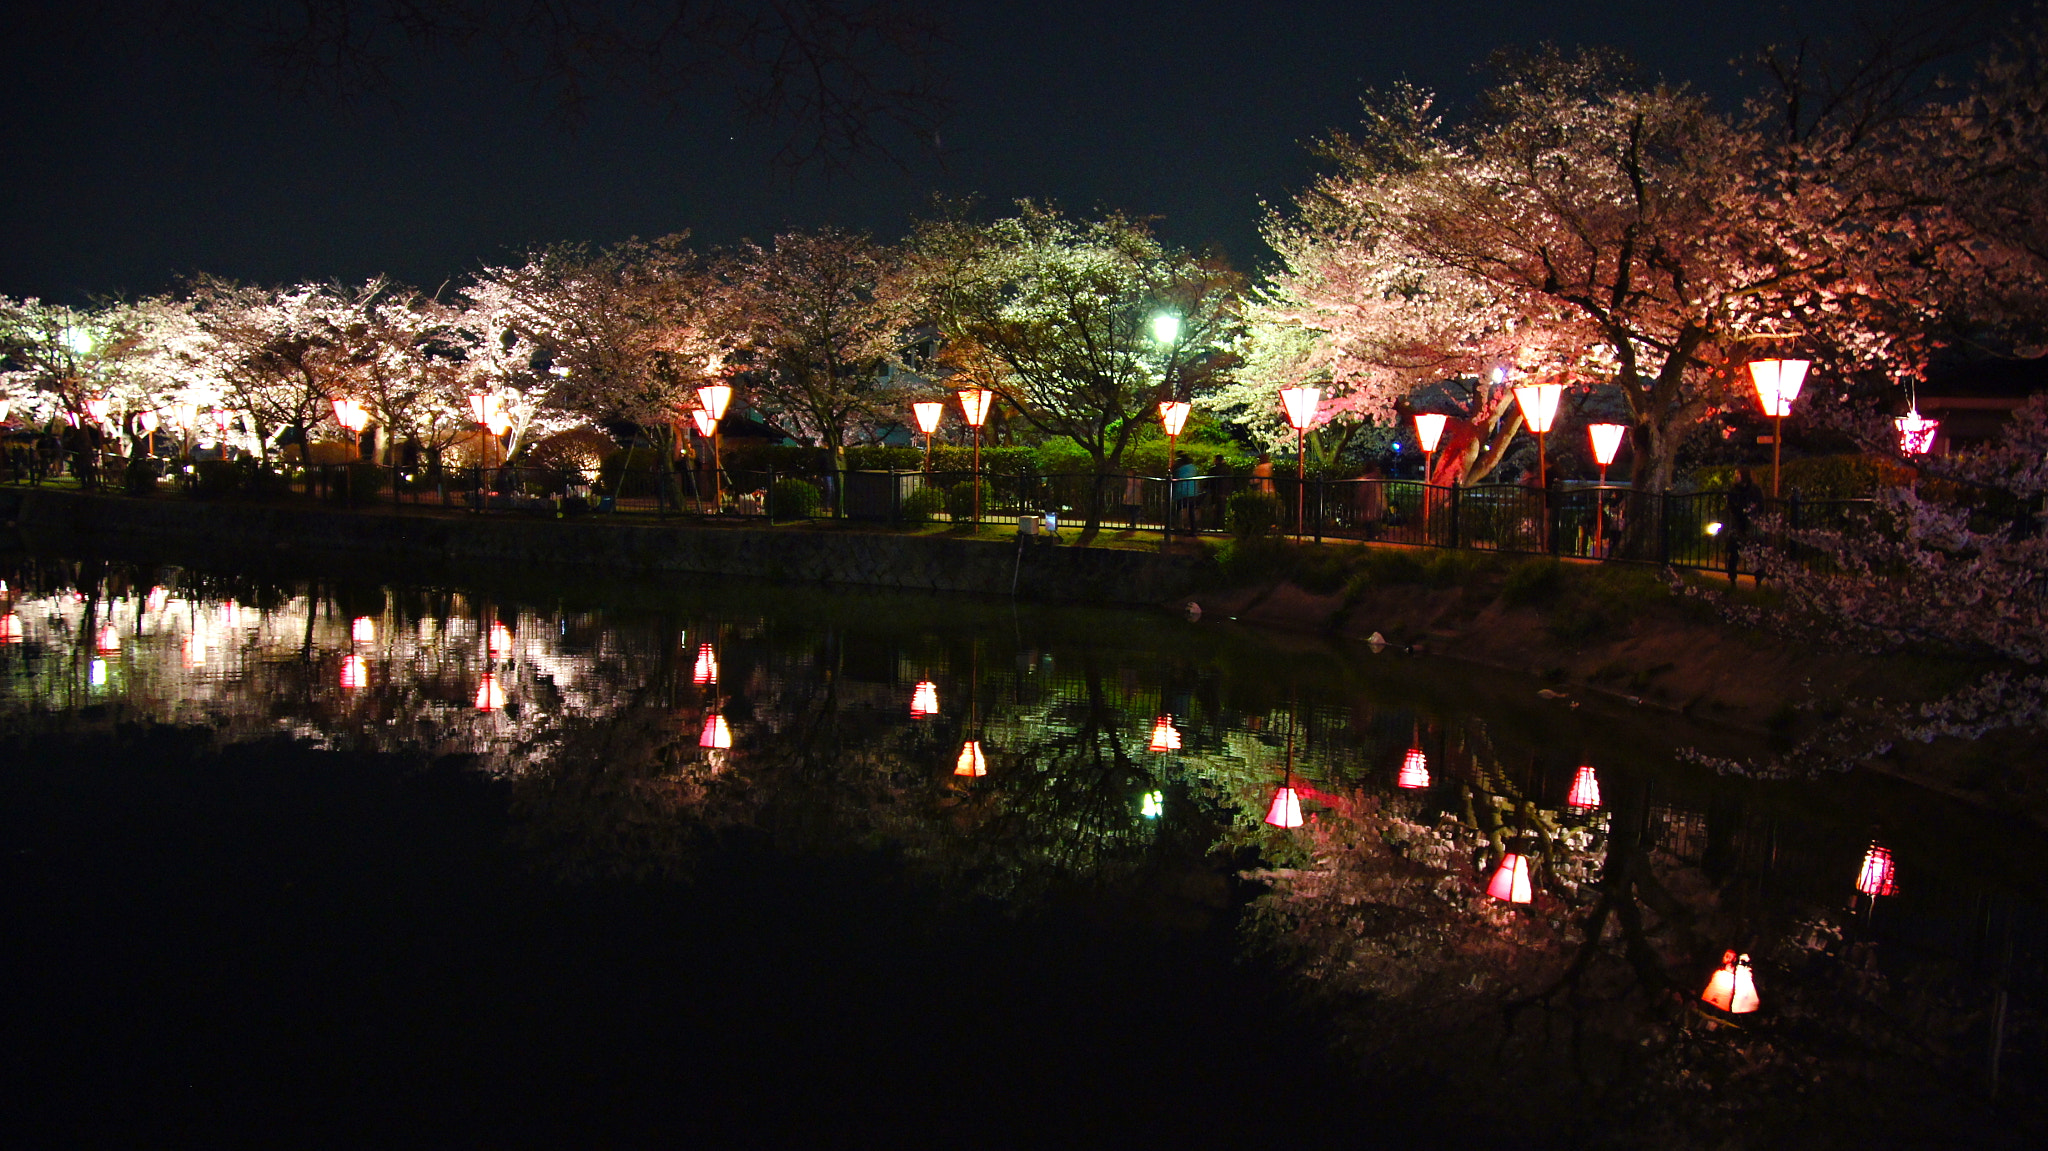 Photograph Cherry blossoms at night by Inoue Keiichi on 500px